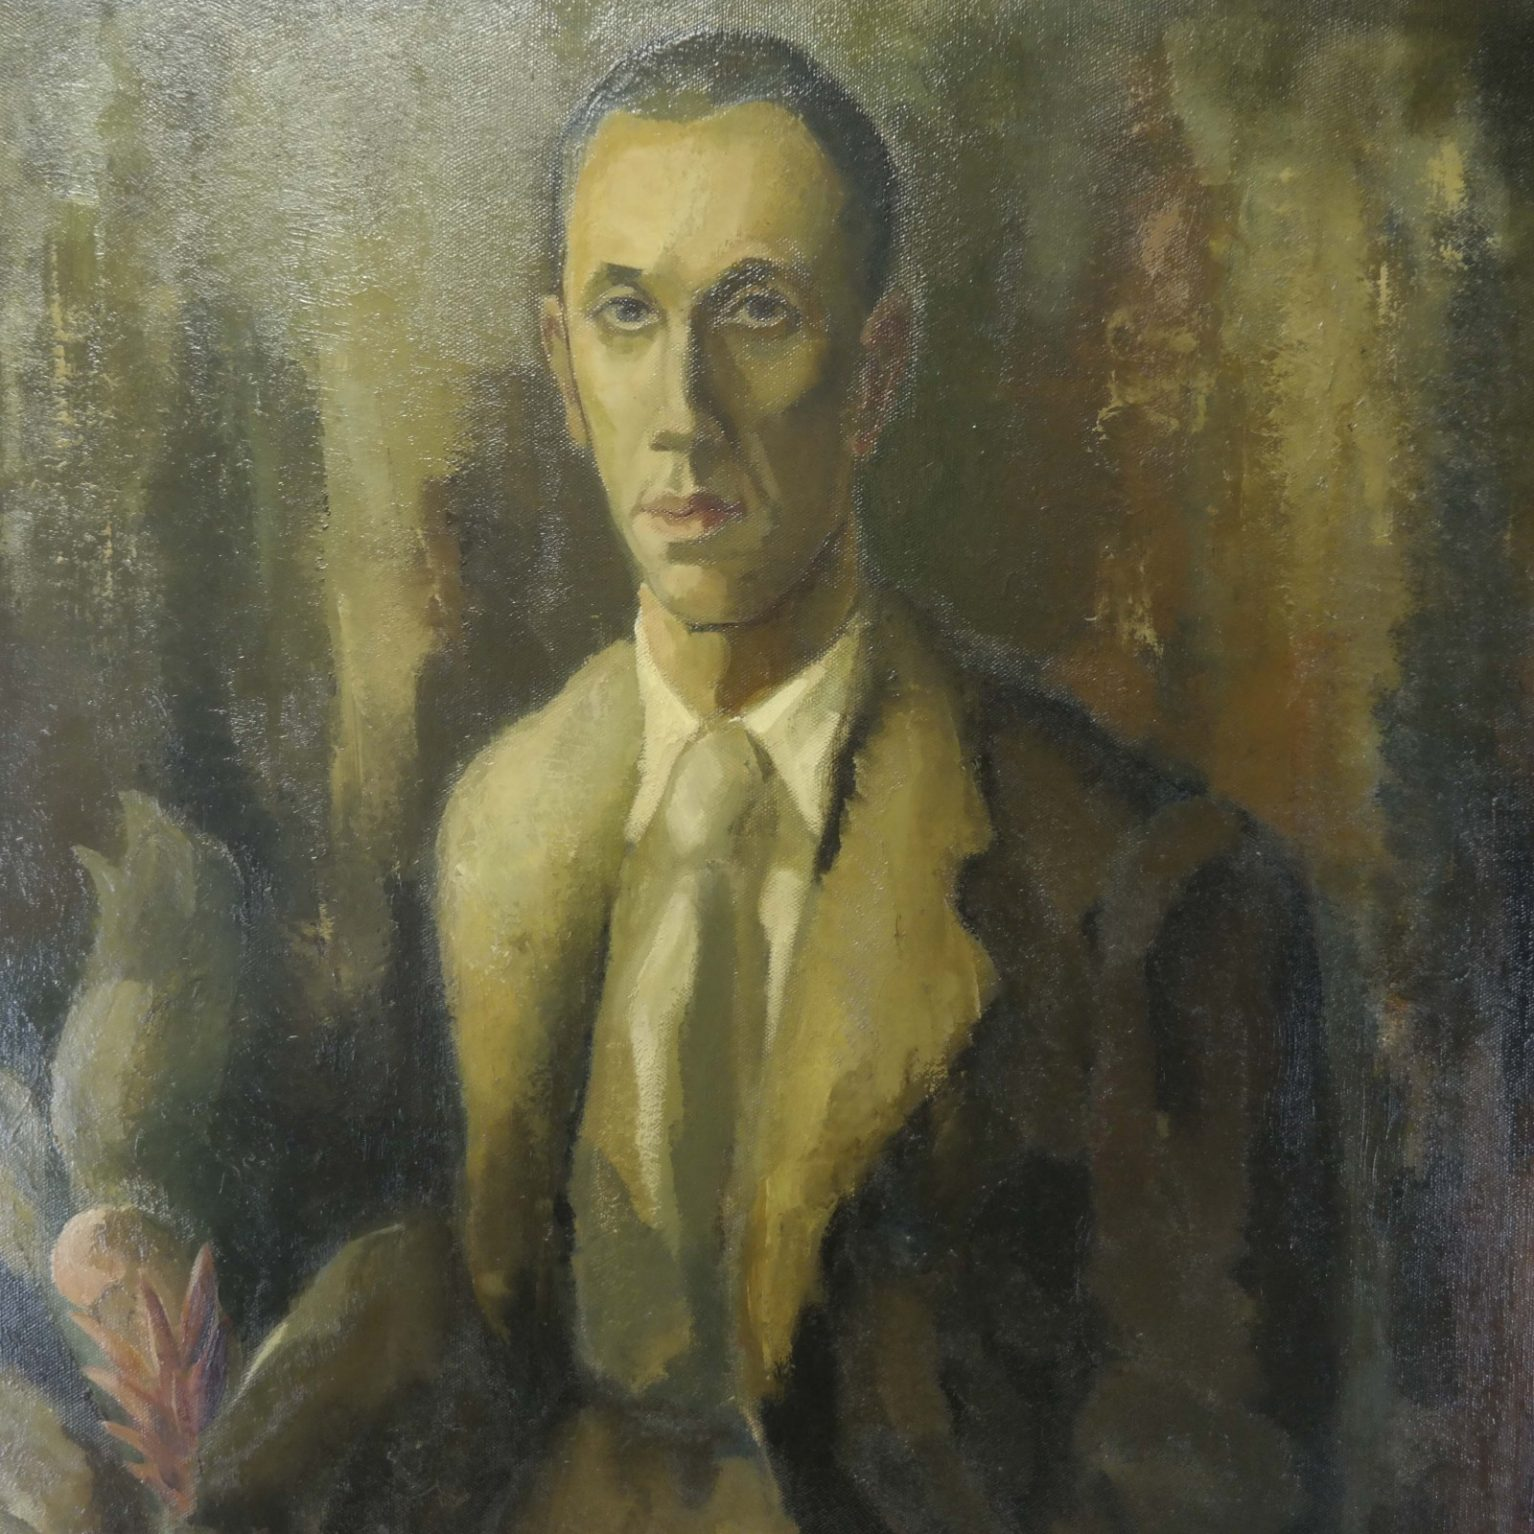 Guillaume Marie Edmond Bellefroid (1893-1971) - Portret